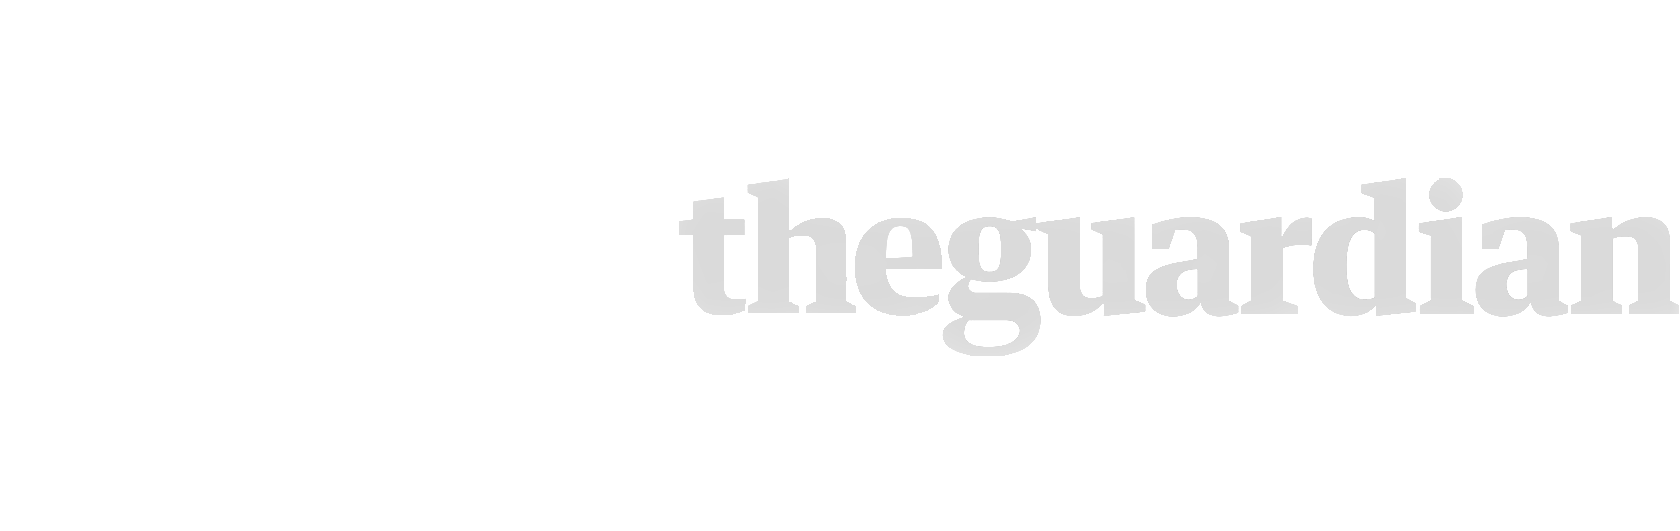 The_Guardian_logo-1.png